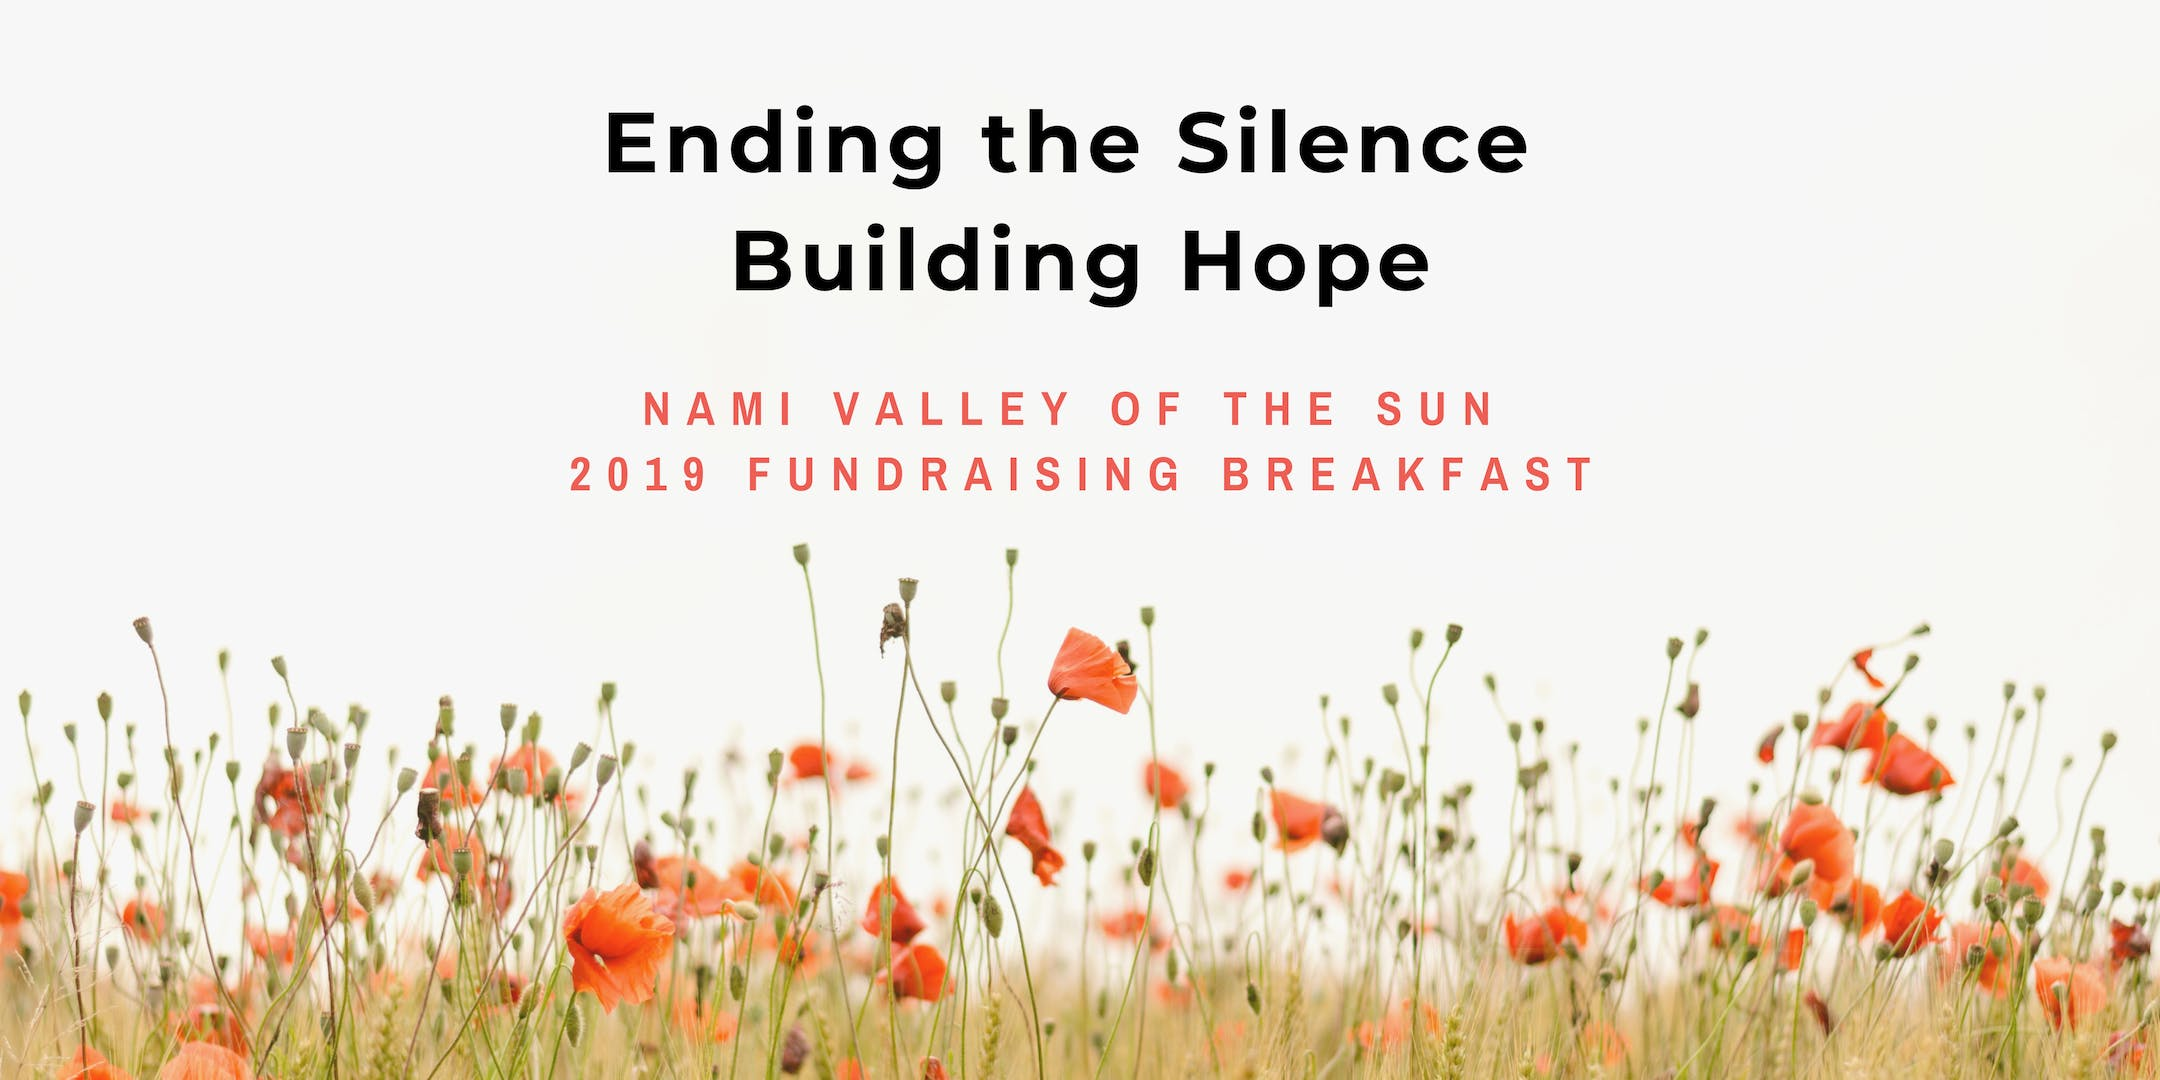 NAMI Valley of the Sun Fundraising Breakfast